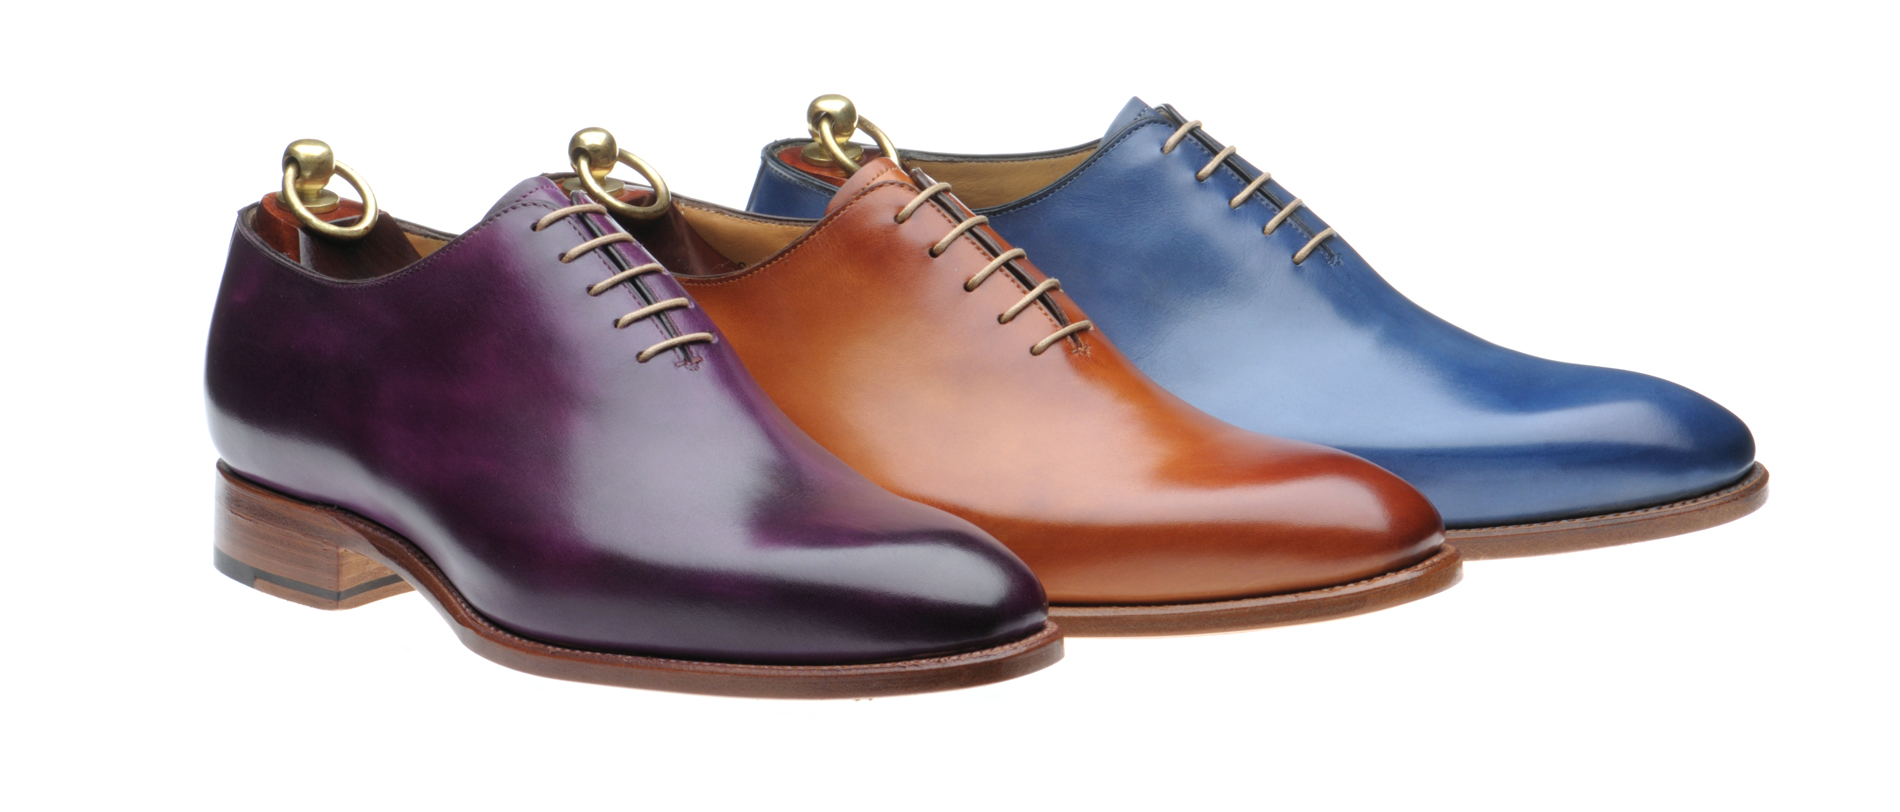 Herring handcrafted patinated shoes by Carlos Santos